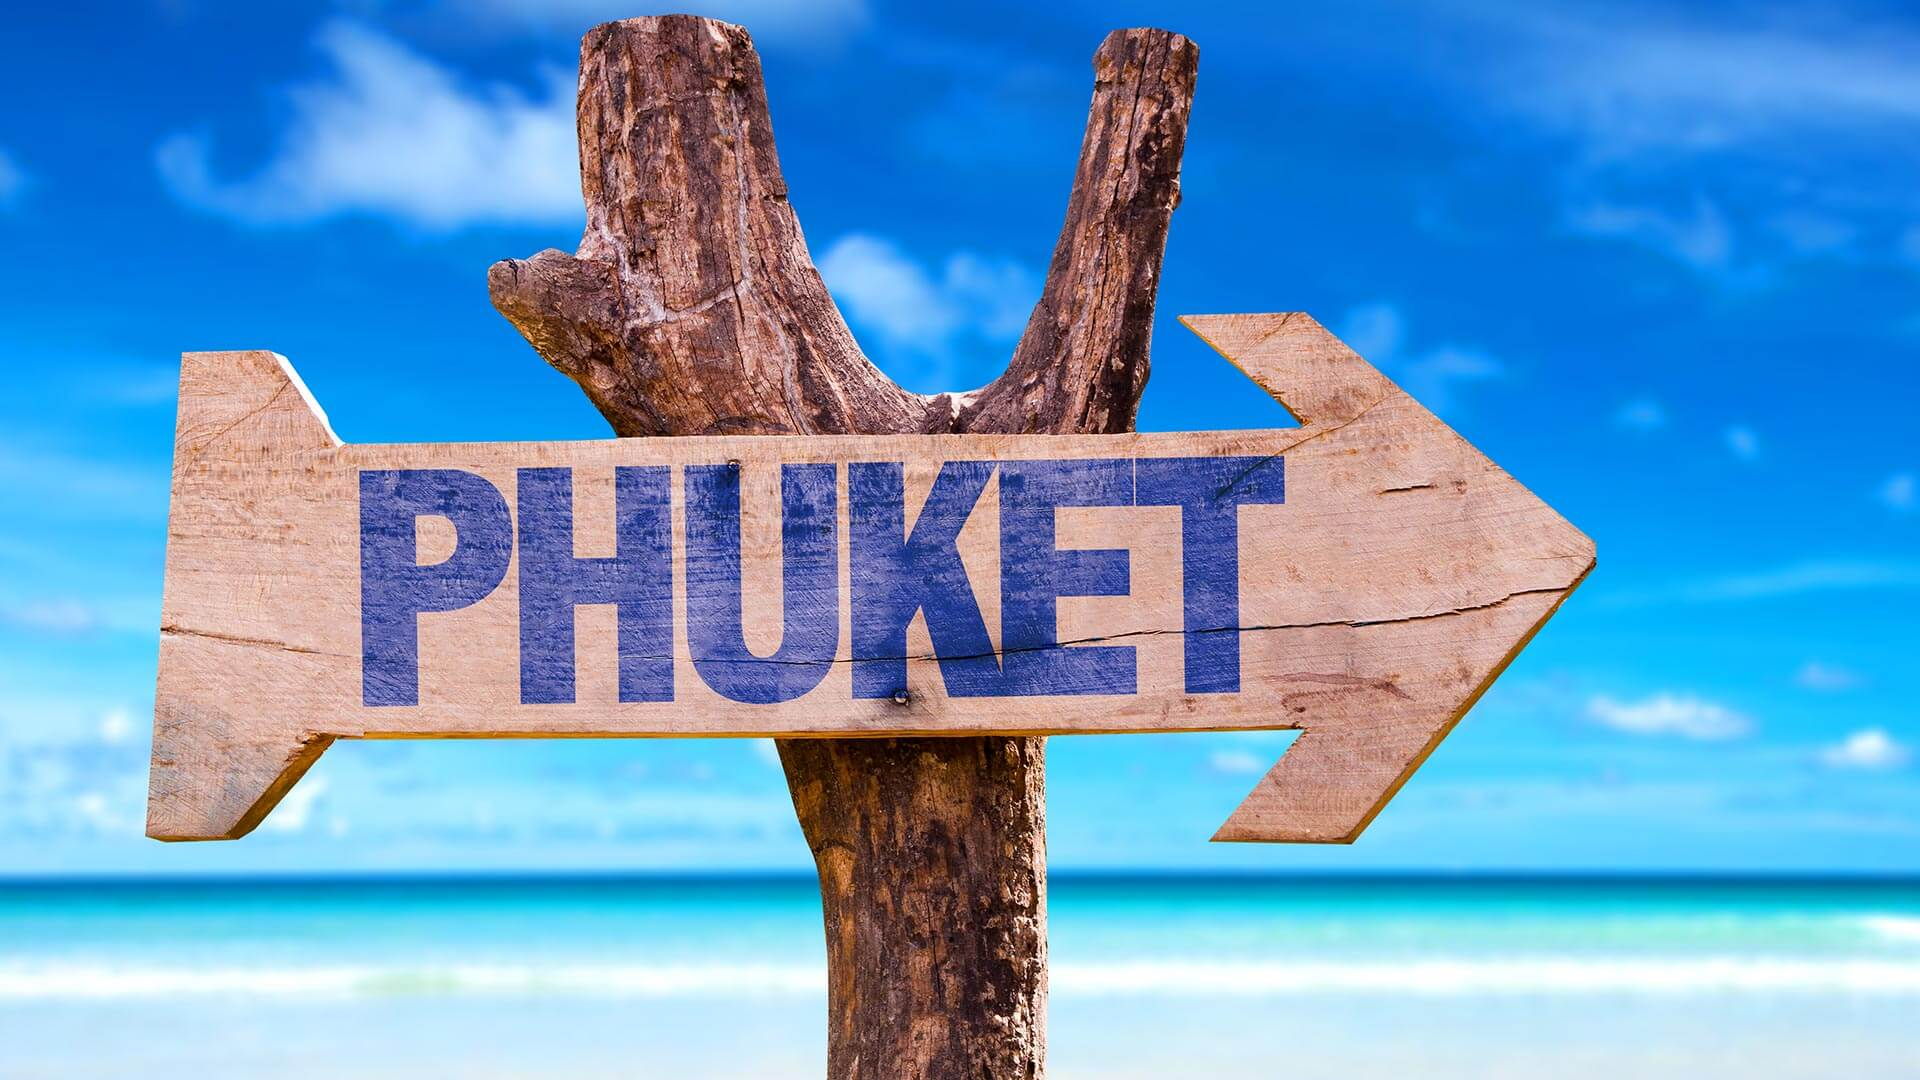 Travel times in Phuket